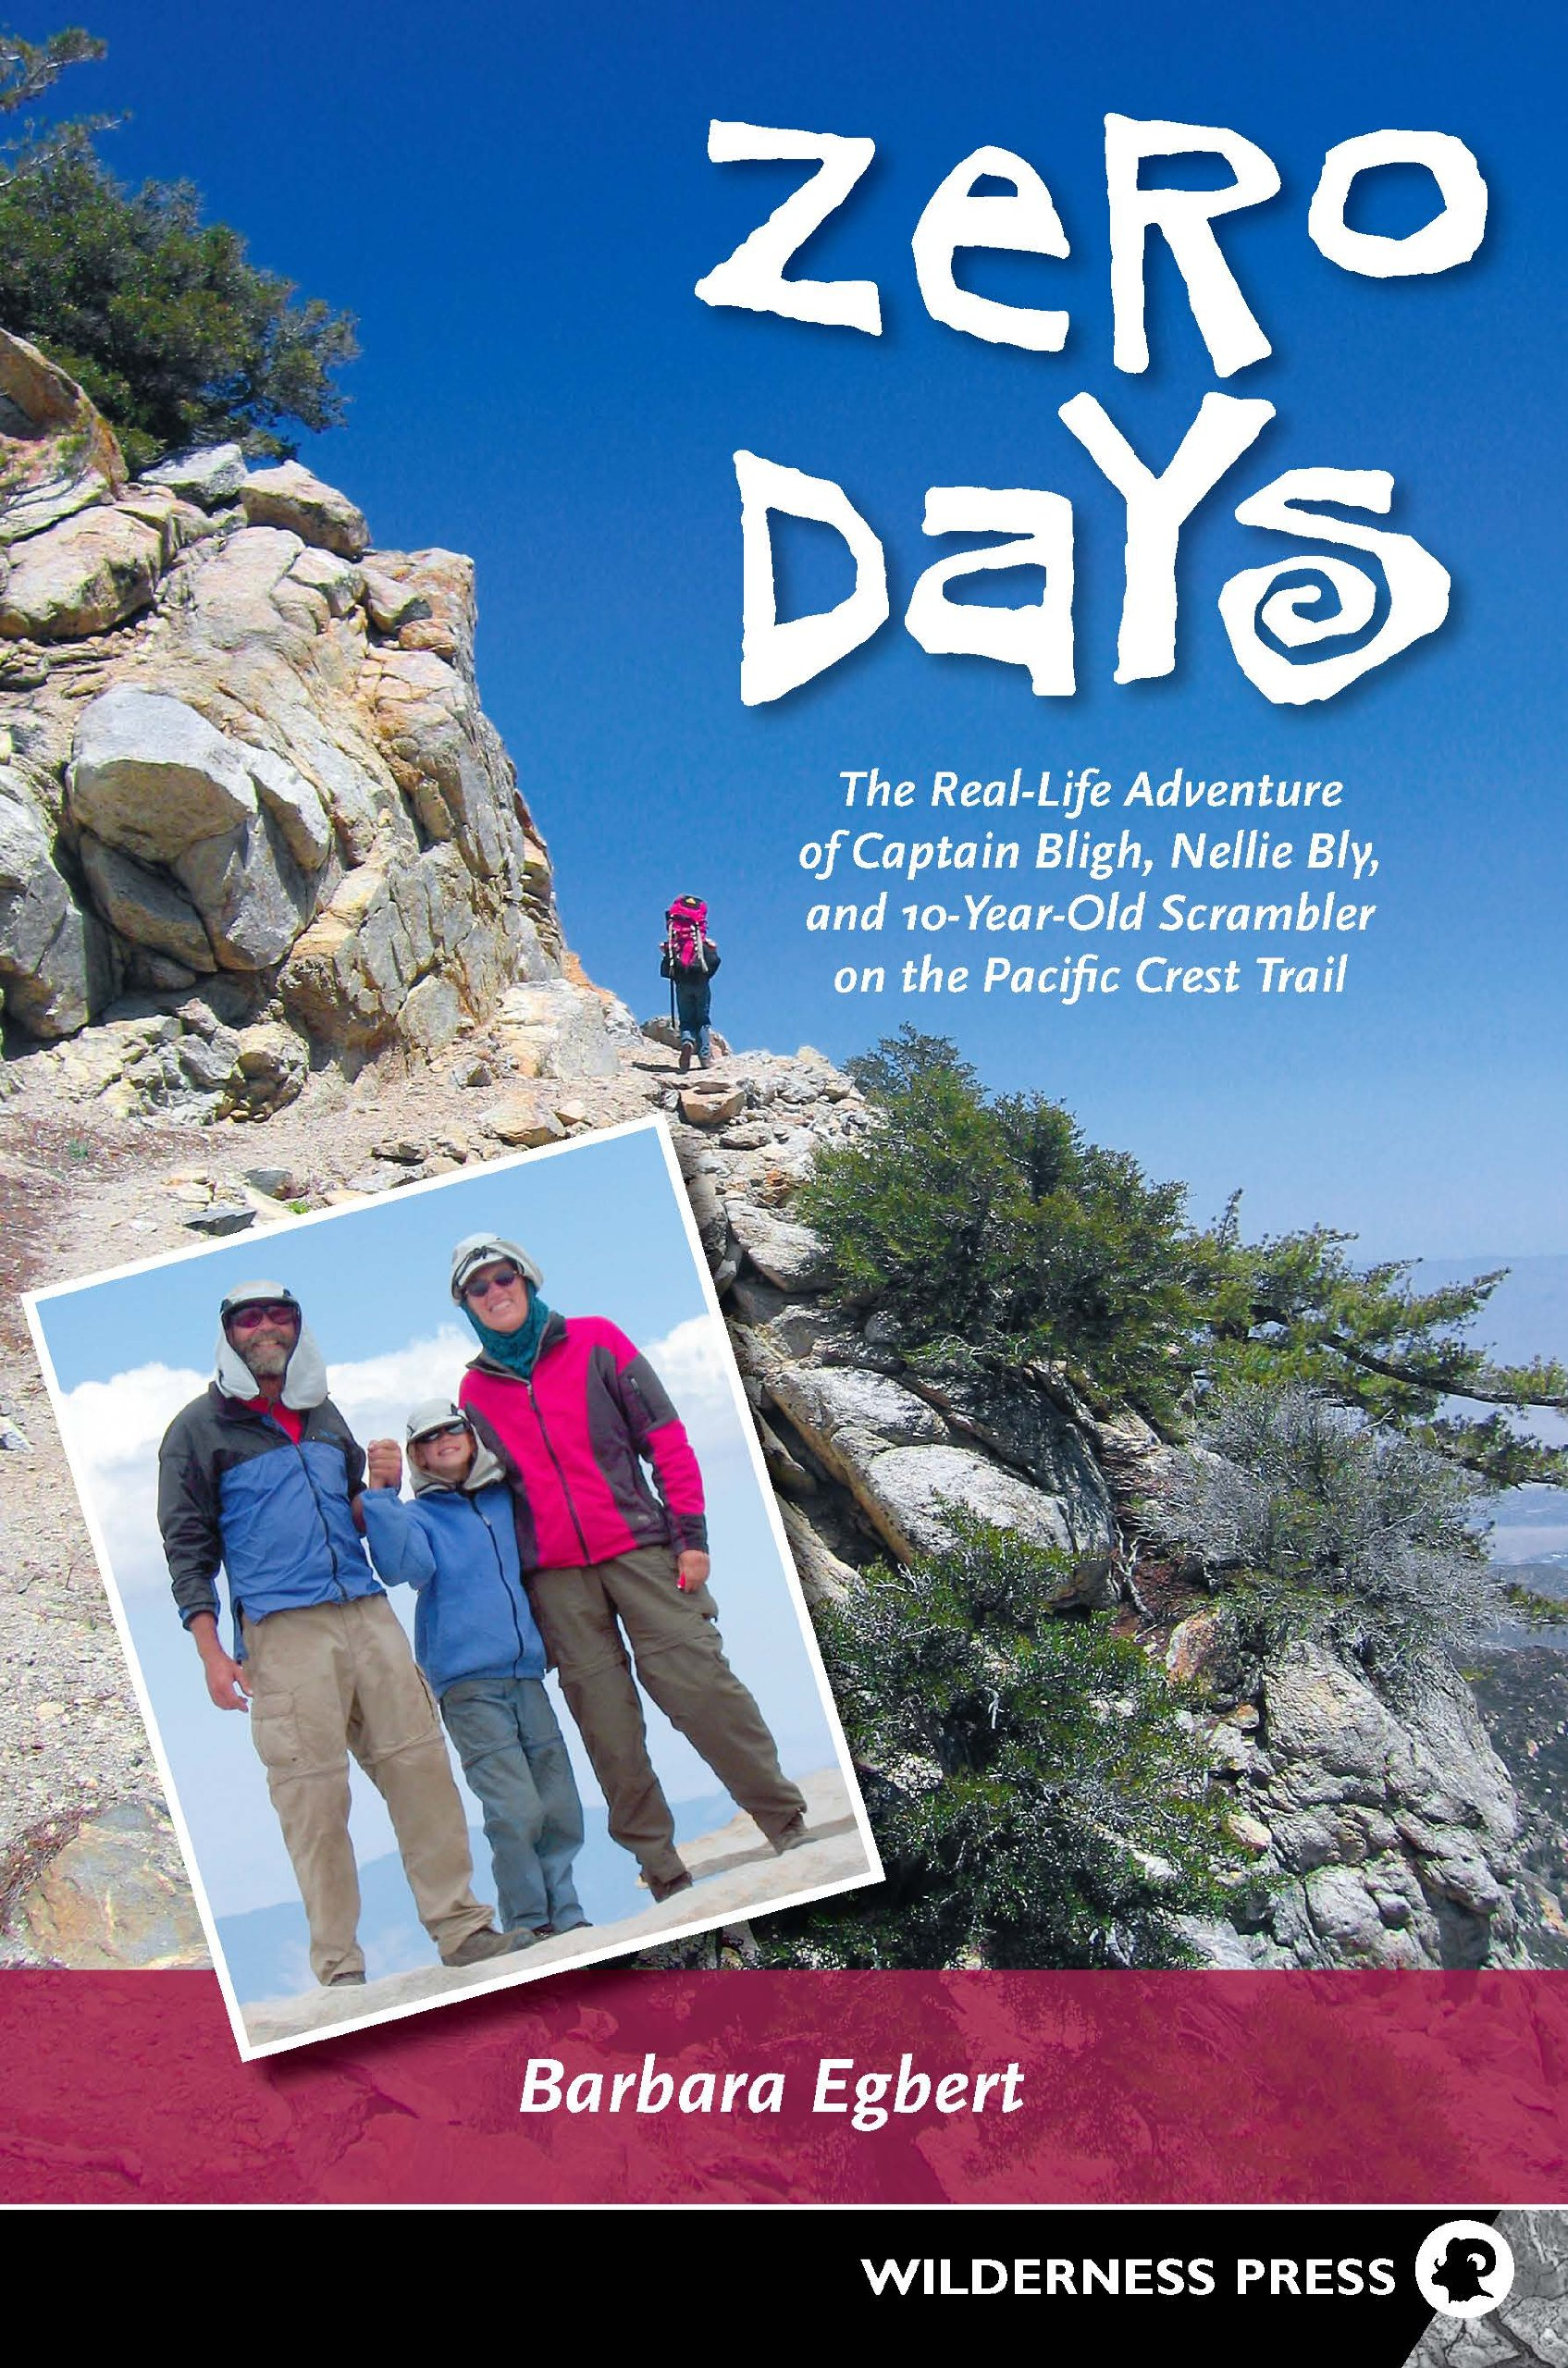 Zero Days: The Real Life Adventure of Captain Bligh, Nellie Bly, and 10-year-old Scrambler on the Pacific Crest Trail ePub fb2 book